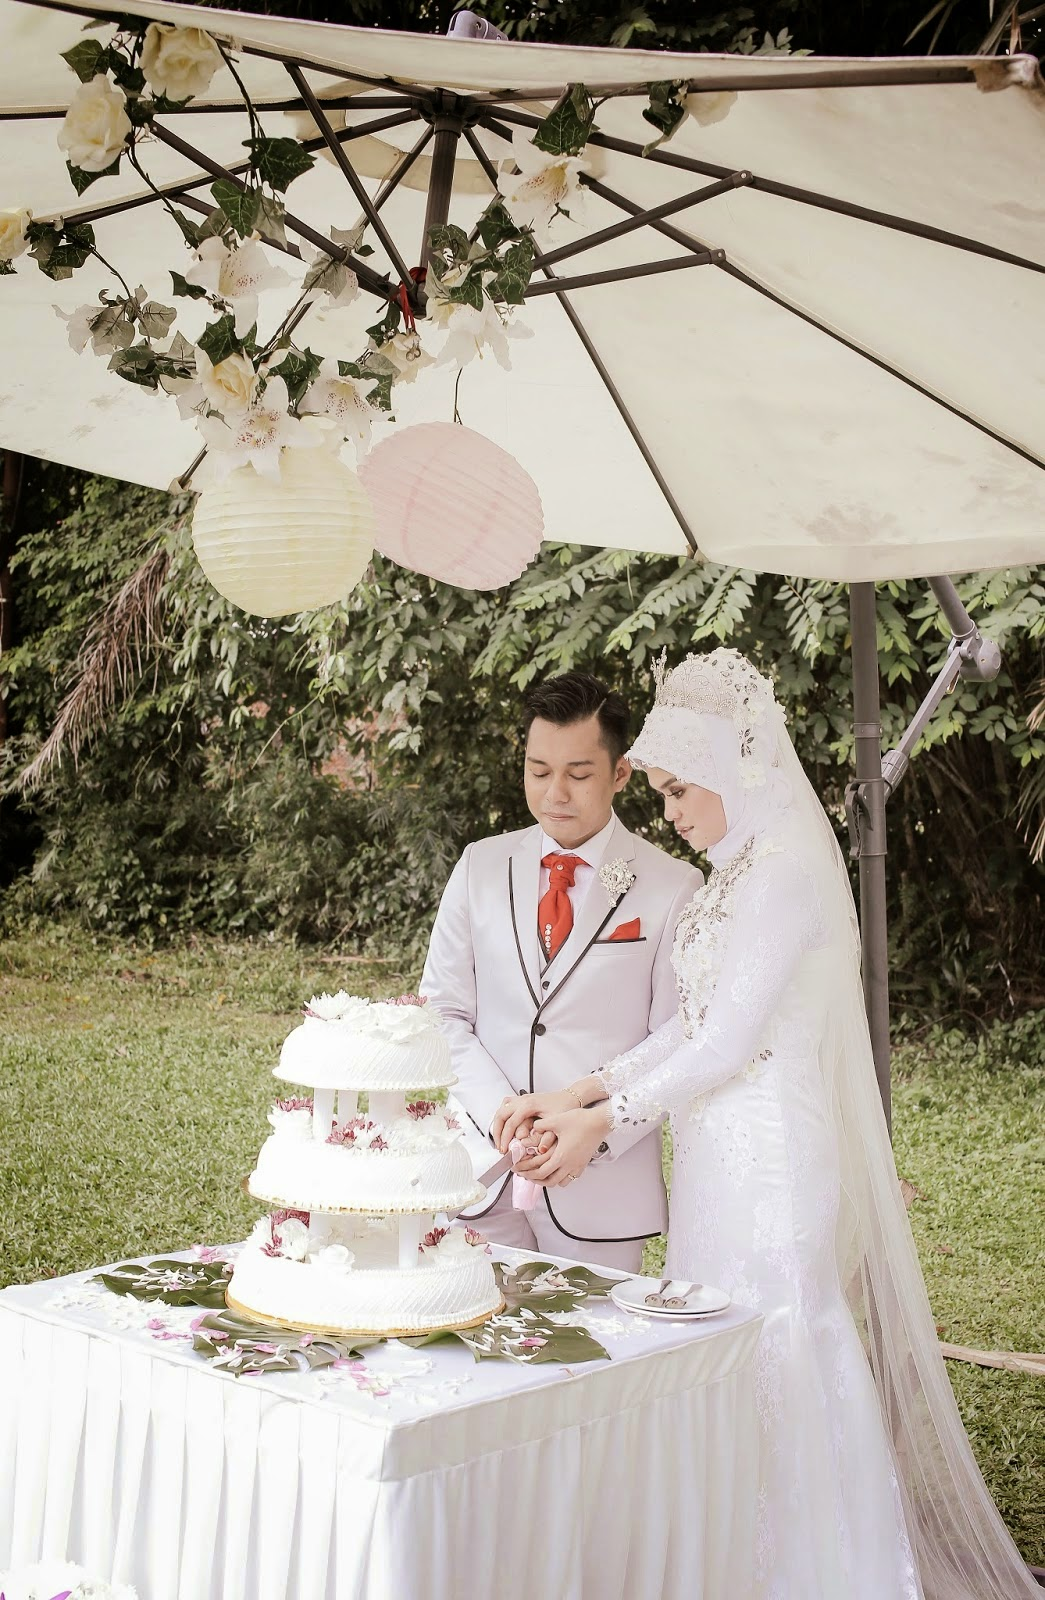 malay wedding cake cutting paper lantern